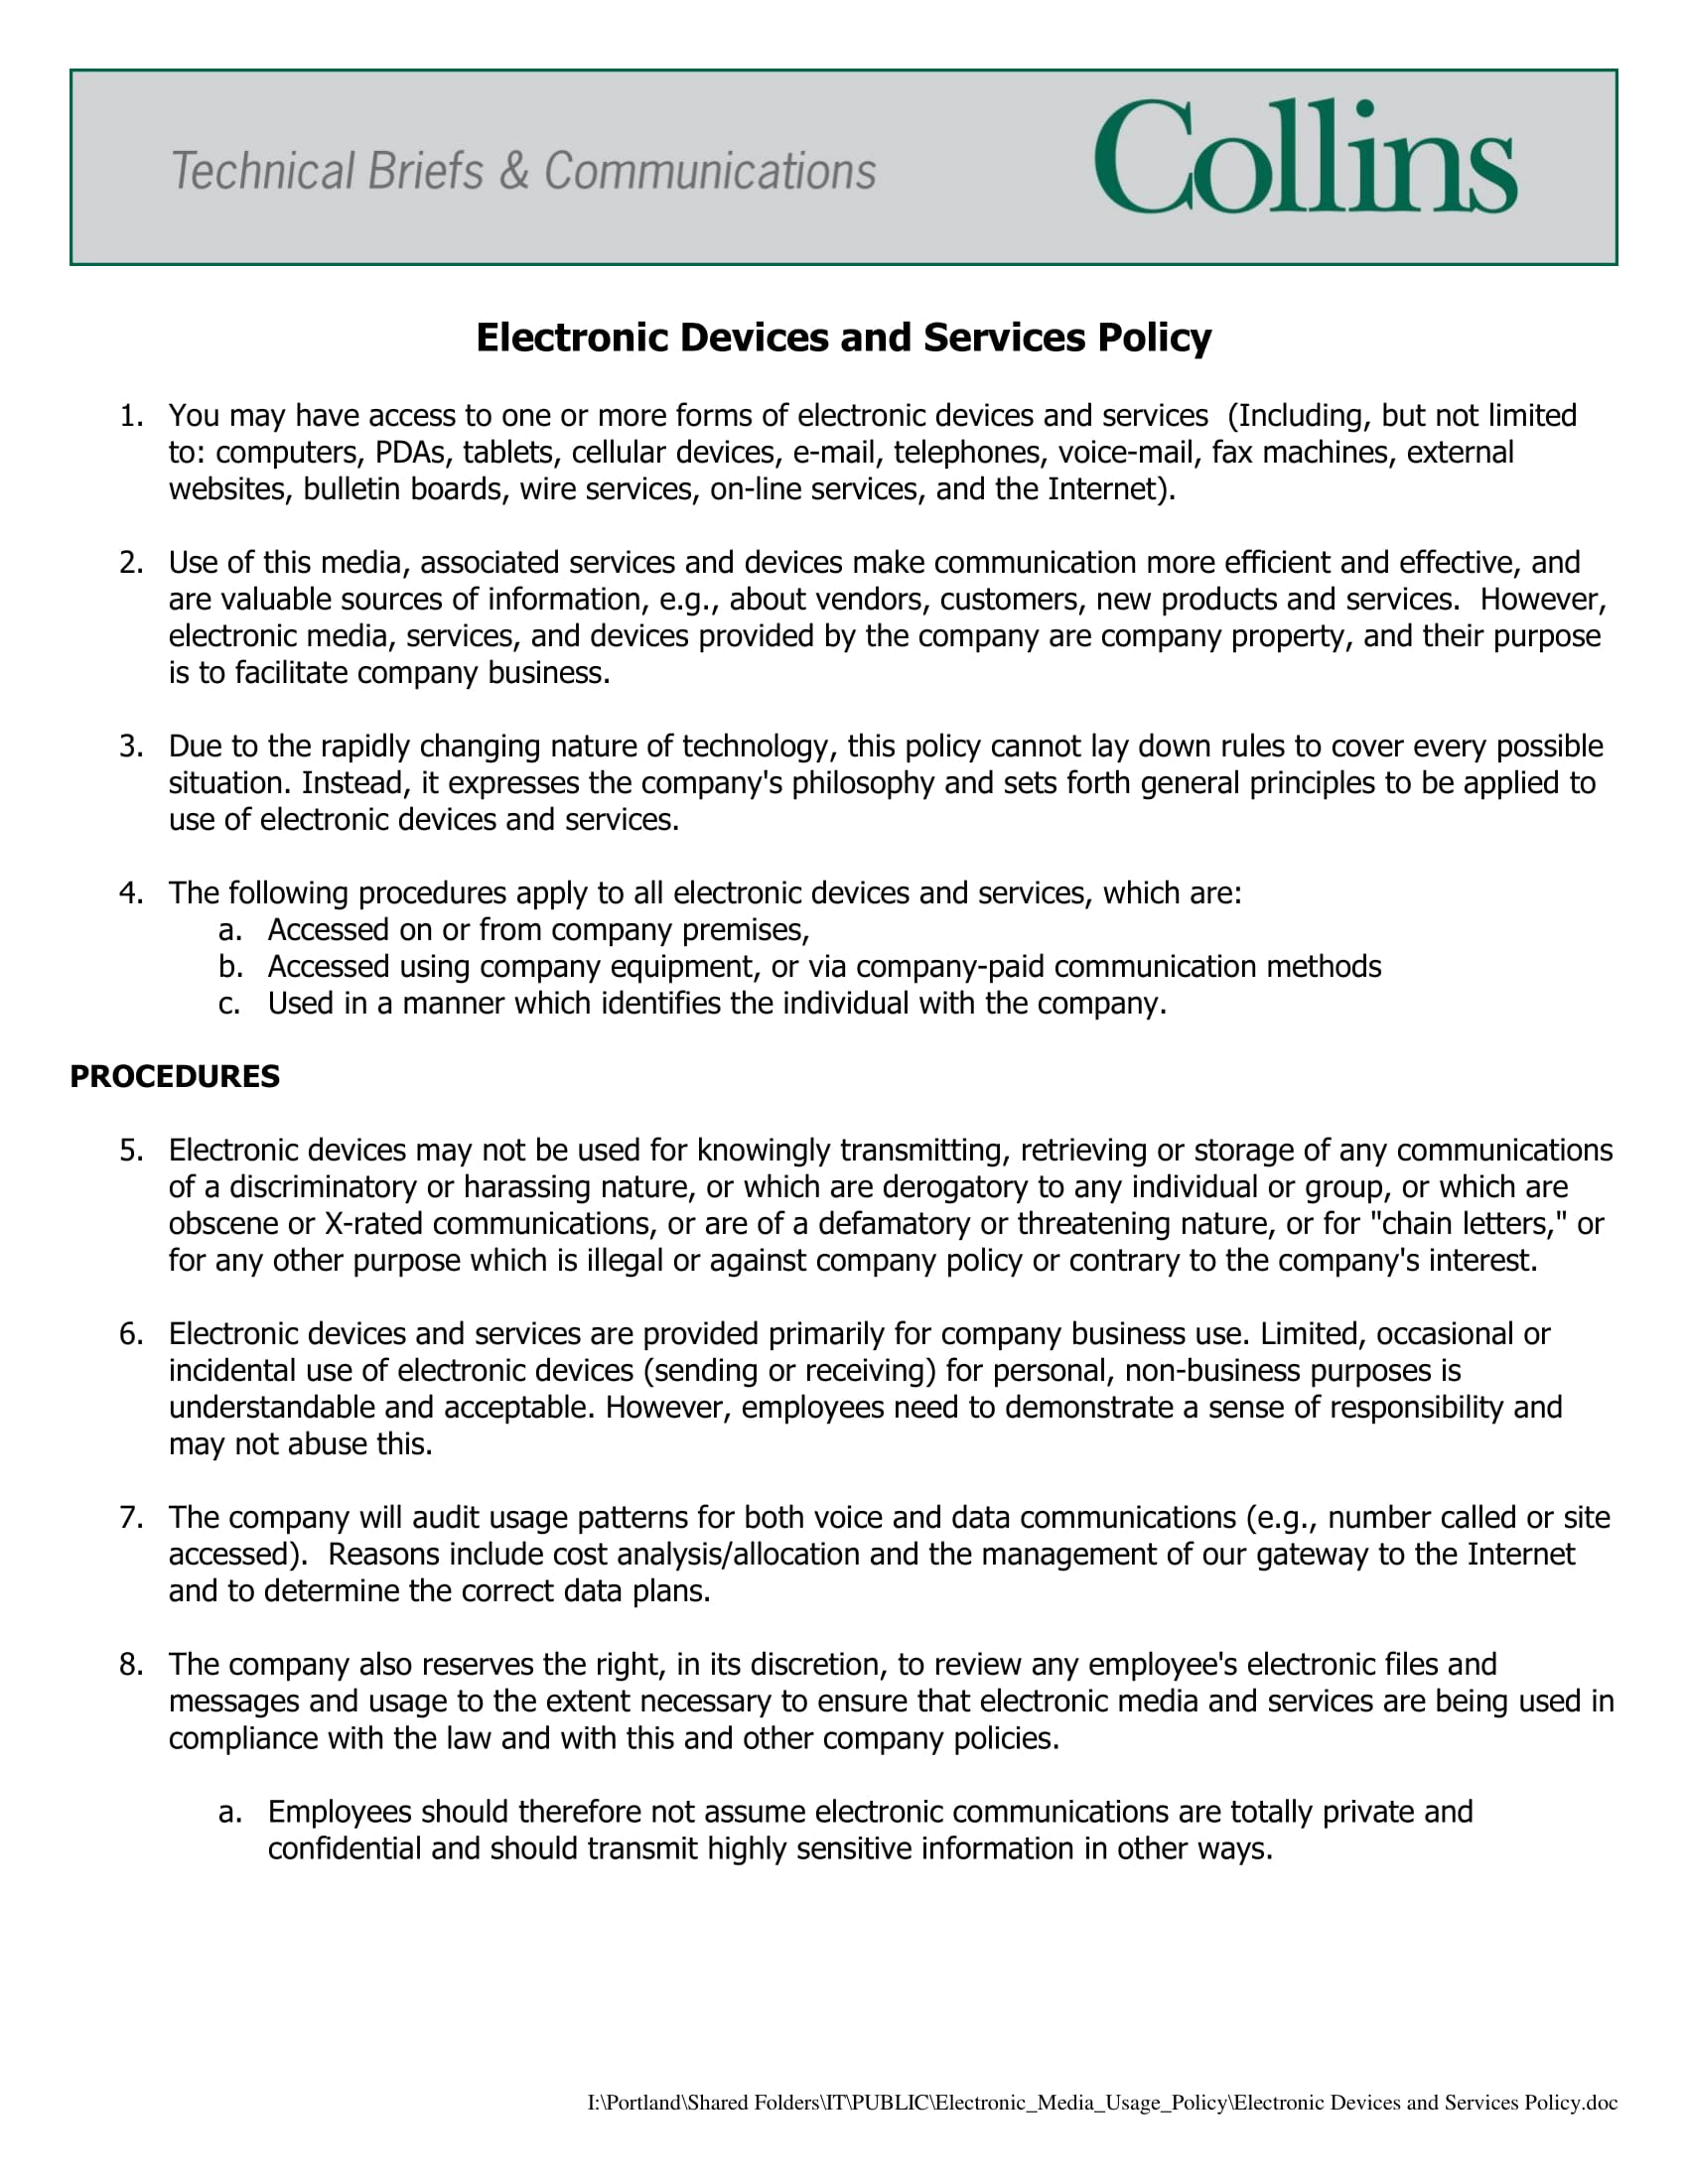 electronic devices and employee email usage policy example